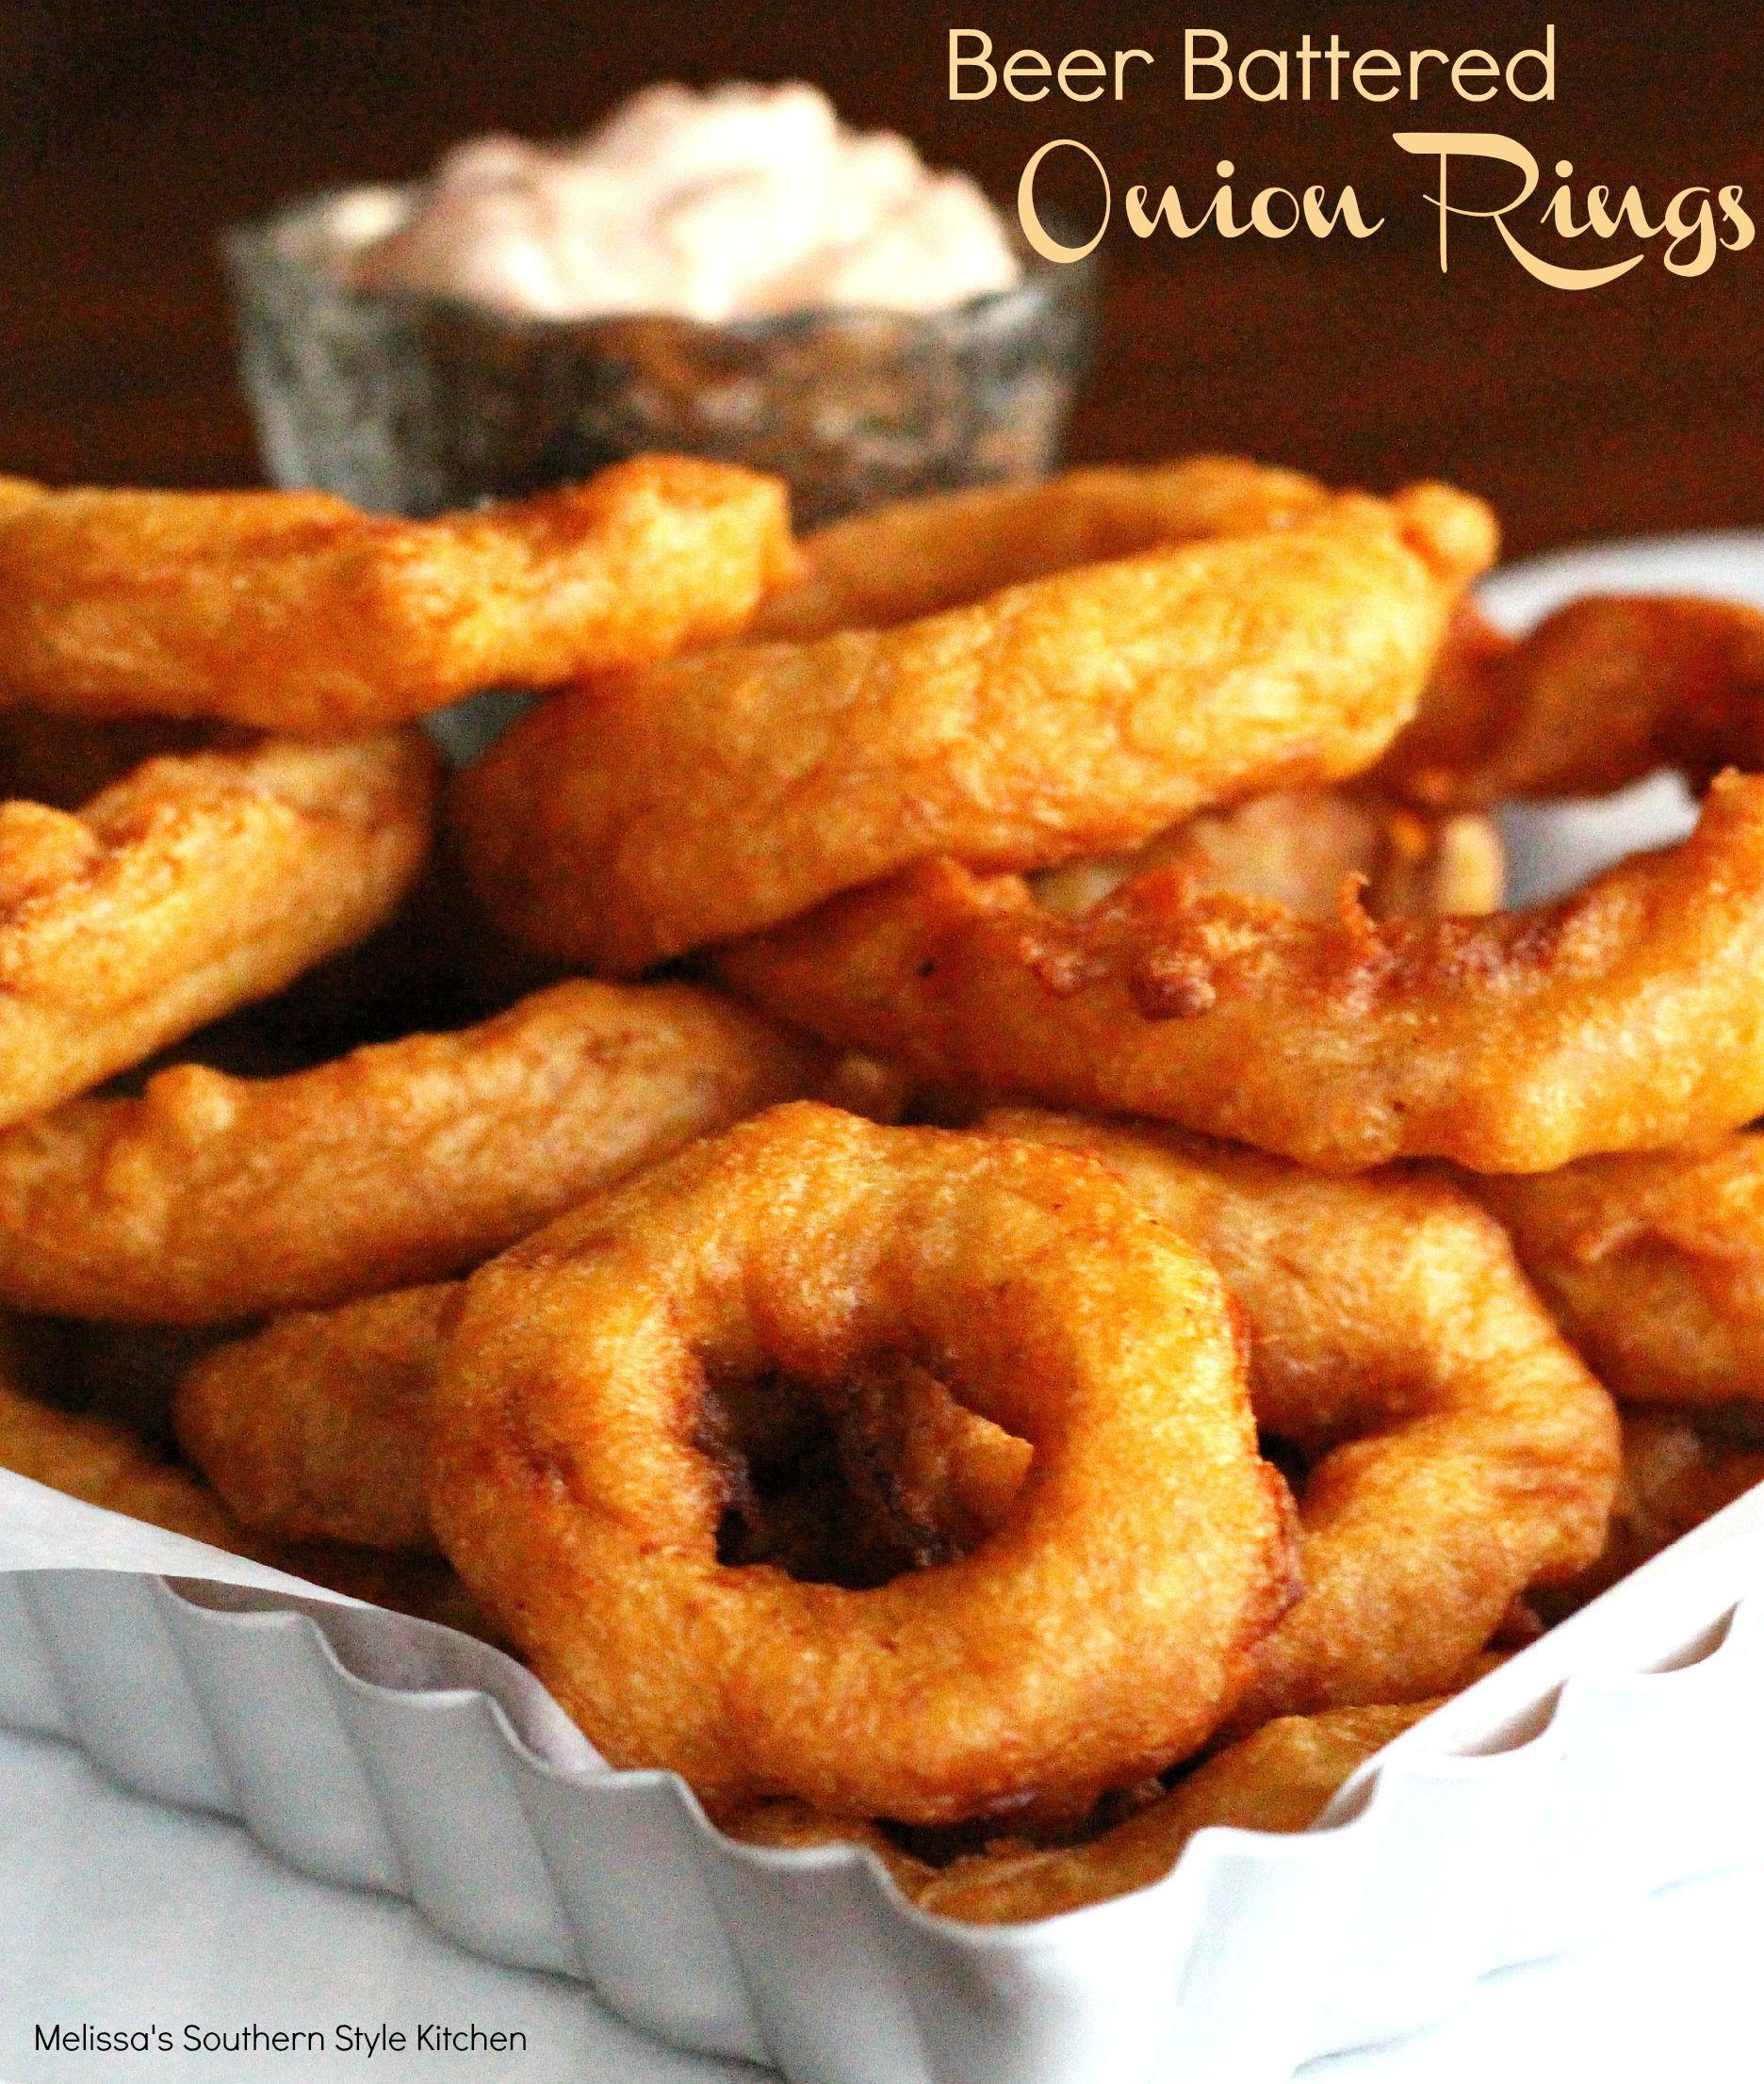 recipe fried crisp battered rings youtube how to beer make watch onion